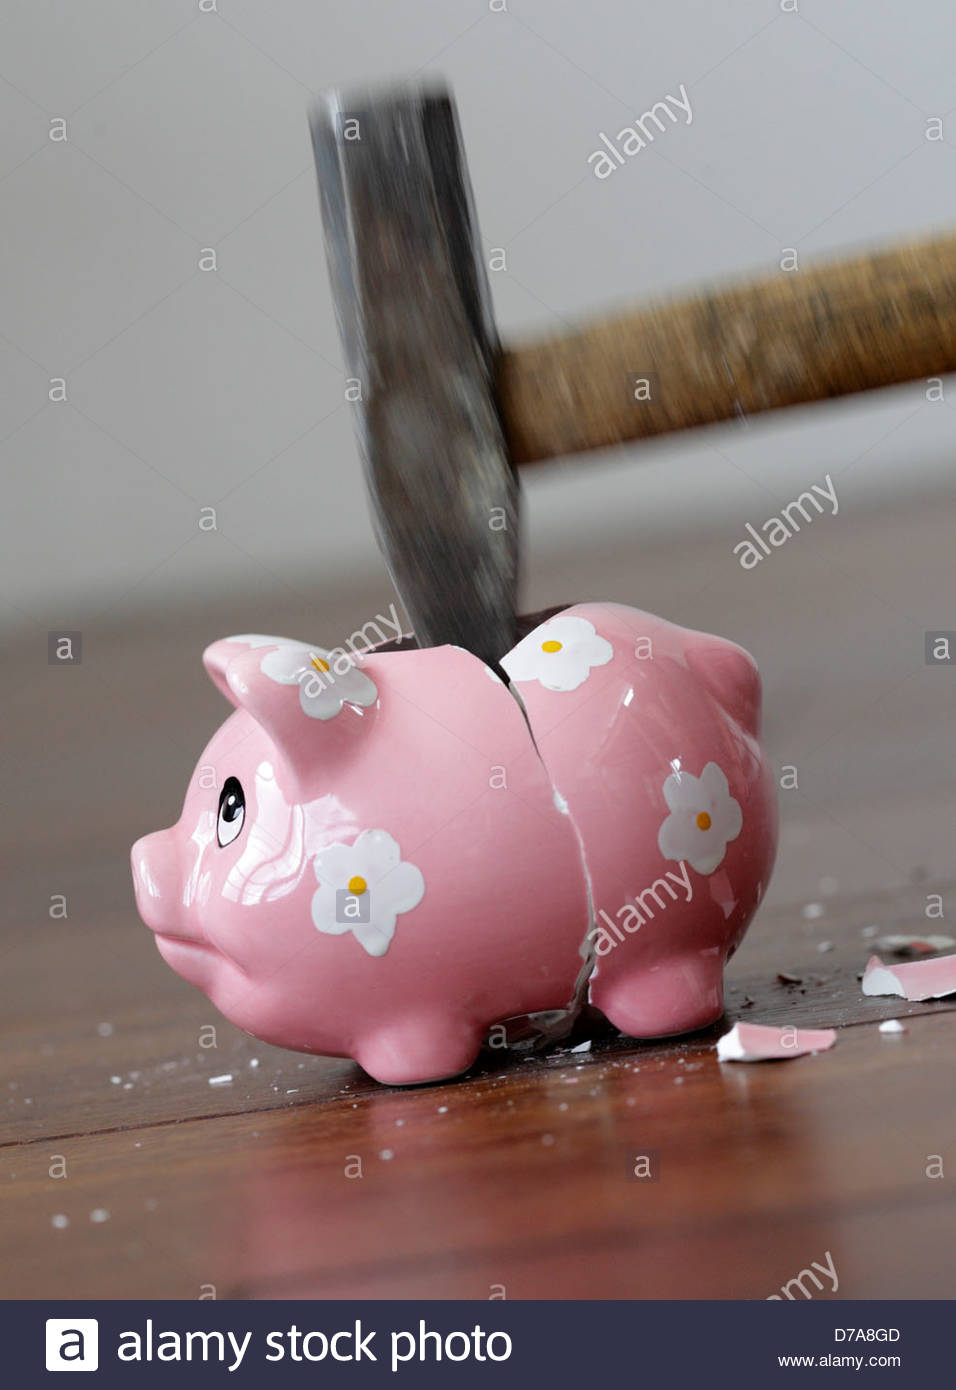 Close-up of a hammer breaking a piggy bank Stock Photo